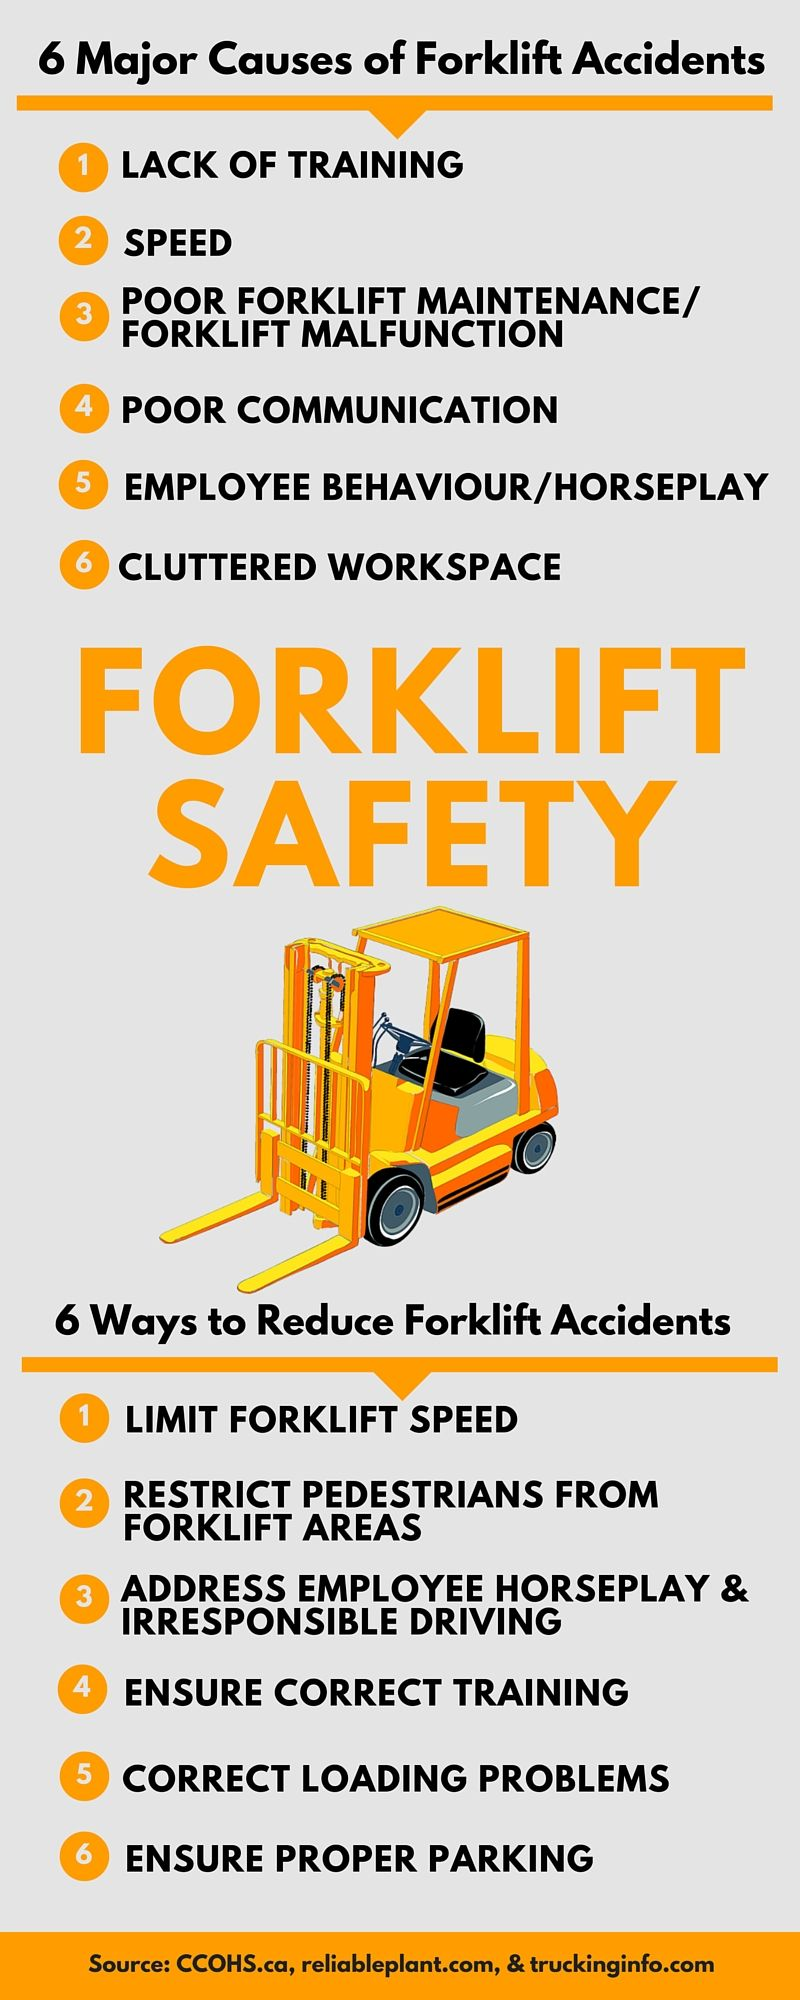 6 Major causes of forklift accidents Health and safety